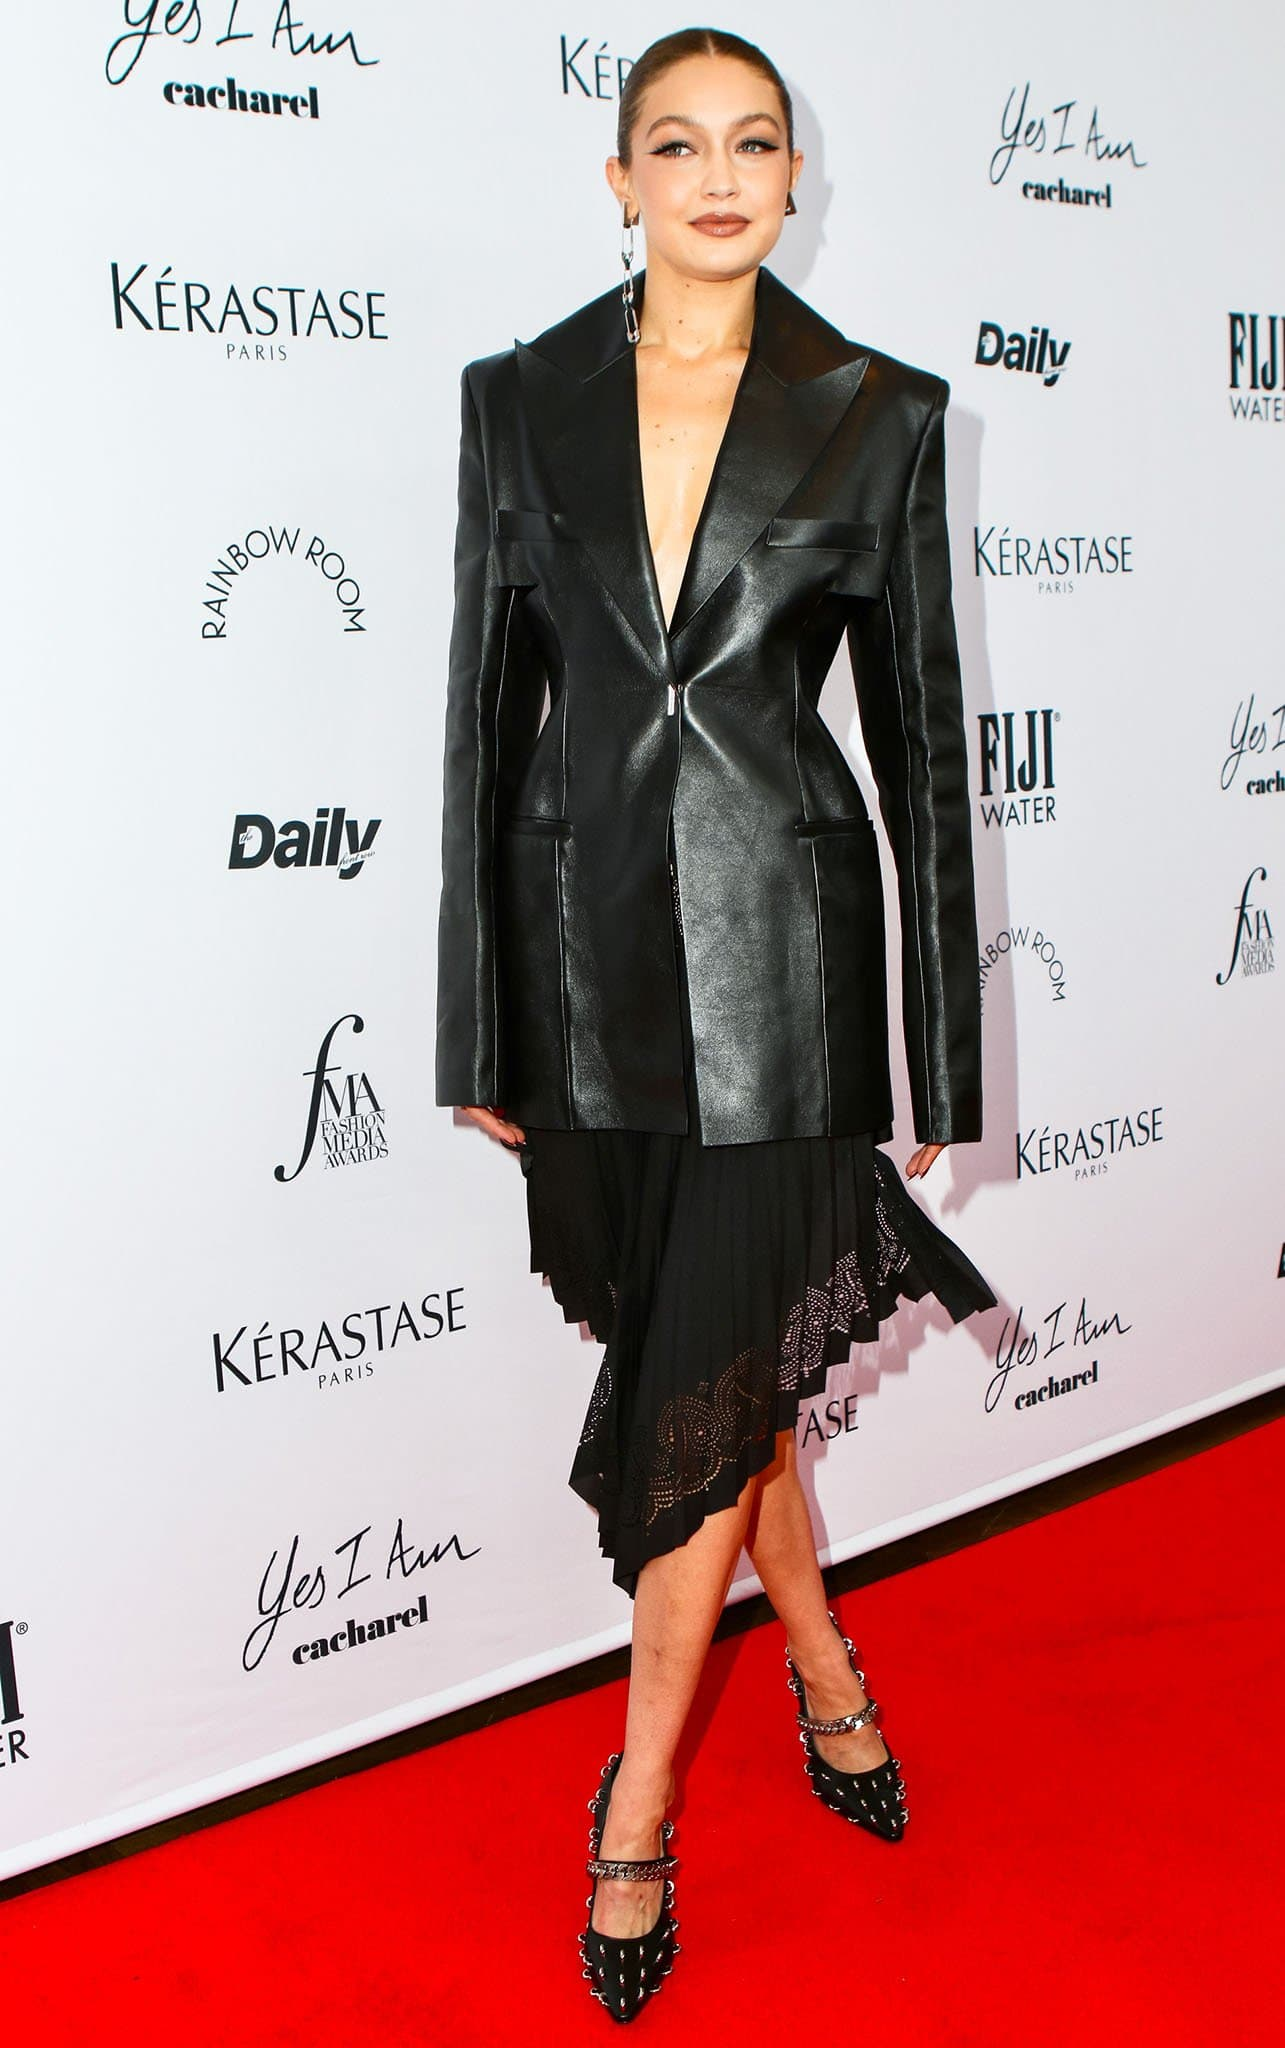 Gigi Hadid goes braless underneath her Givenchy leather jacket and asymmetrical skirt at The Daily Front Row Fashion Media Awards